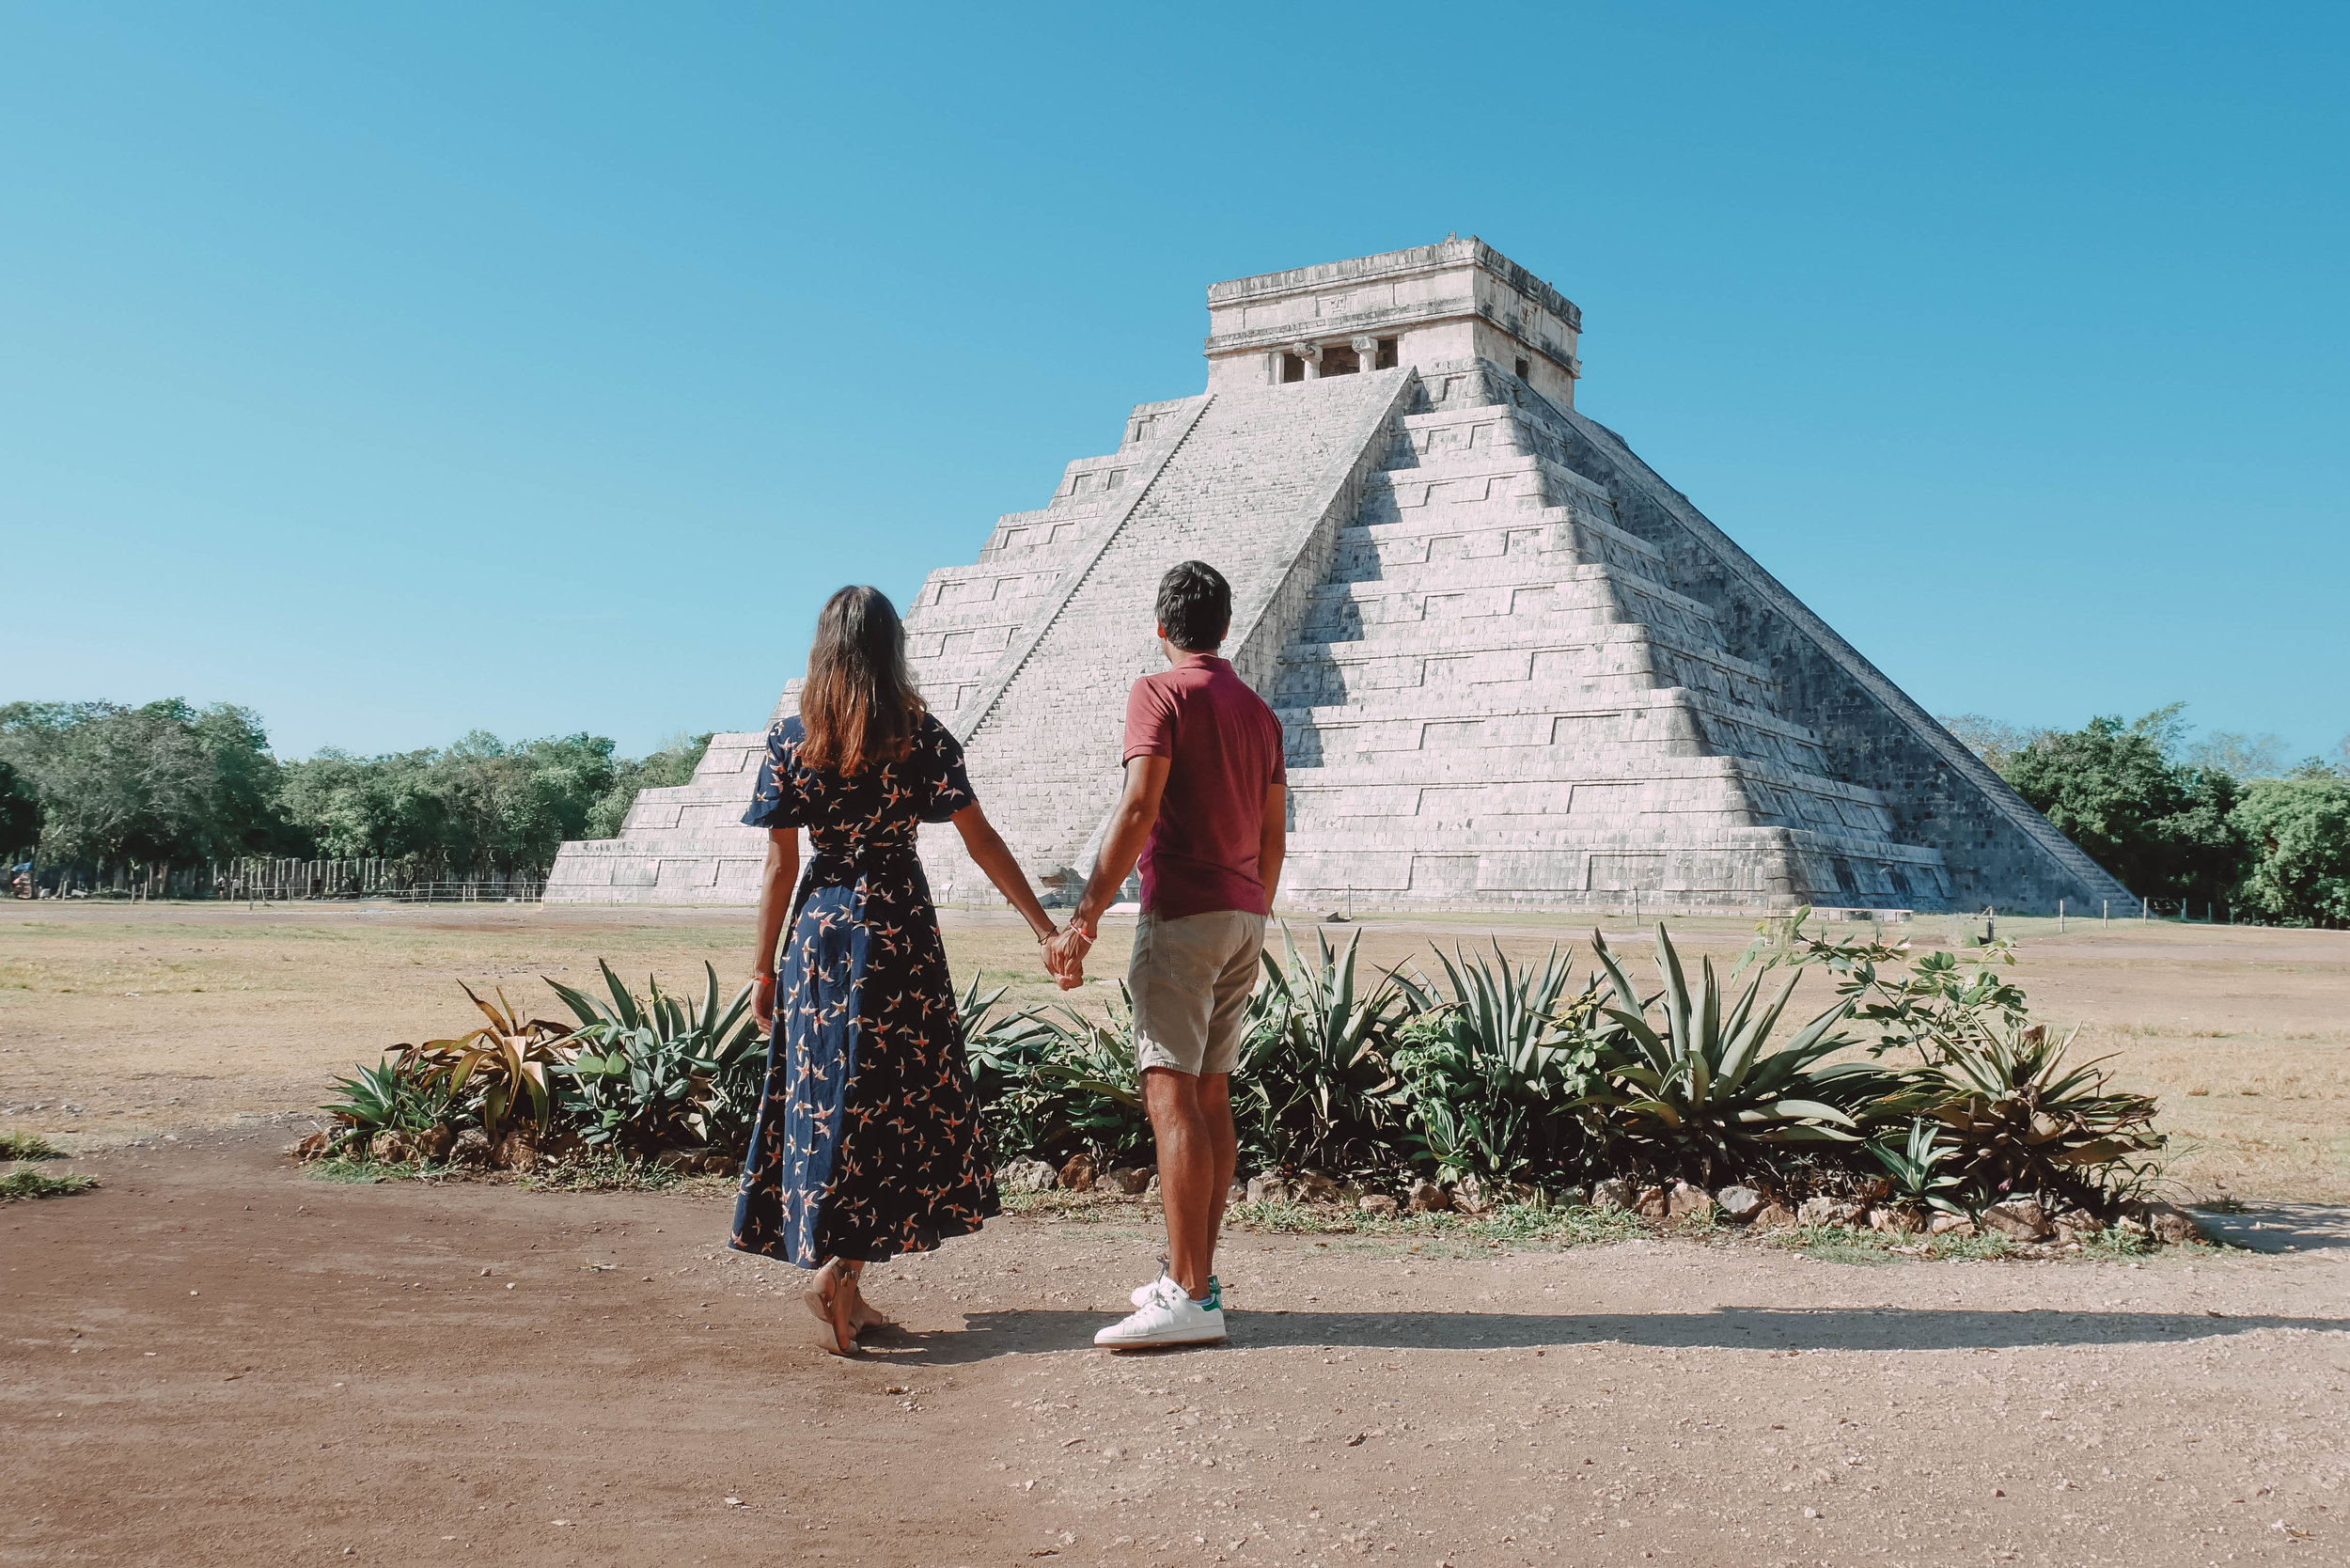 chichen-itza-merveille-du-monde-the-cheerfulist-julien-boye